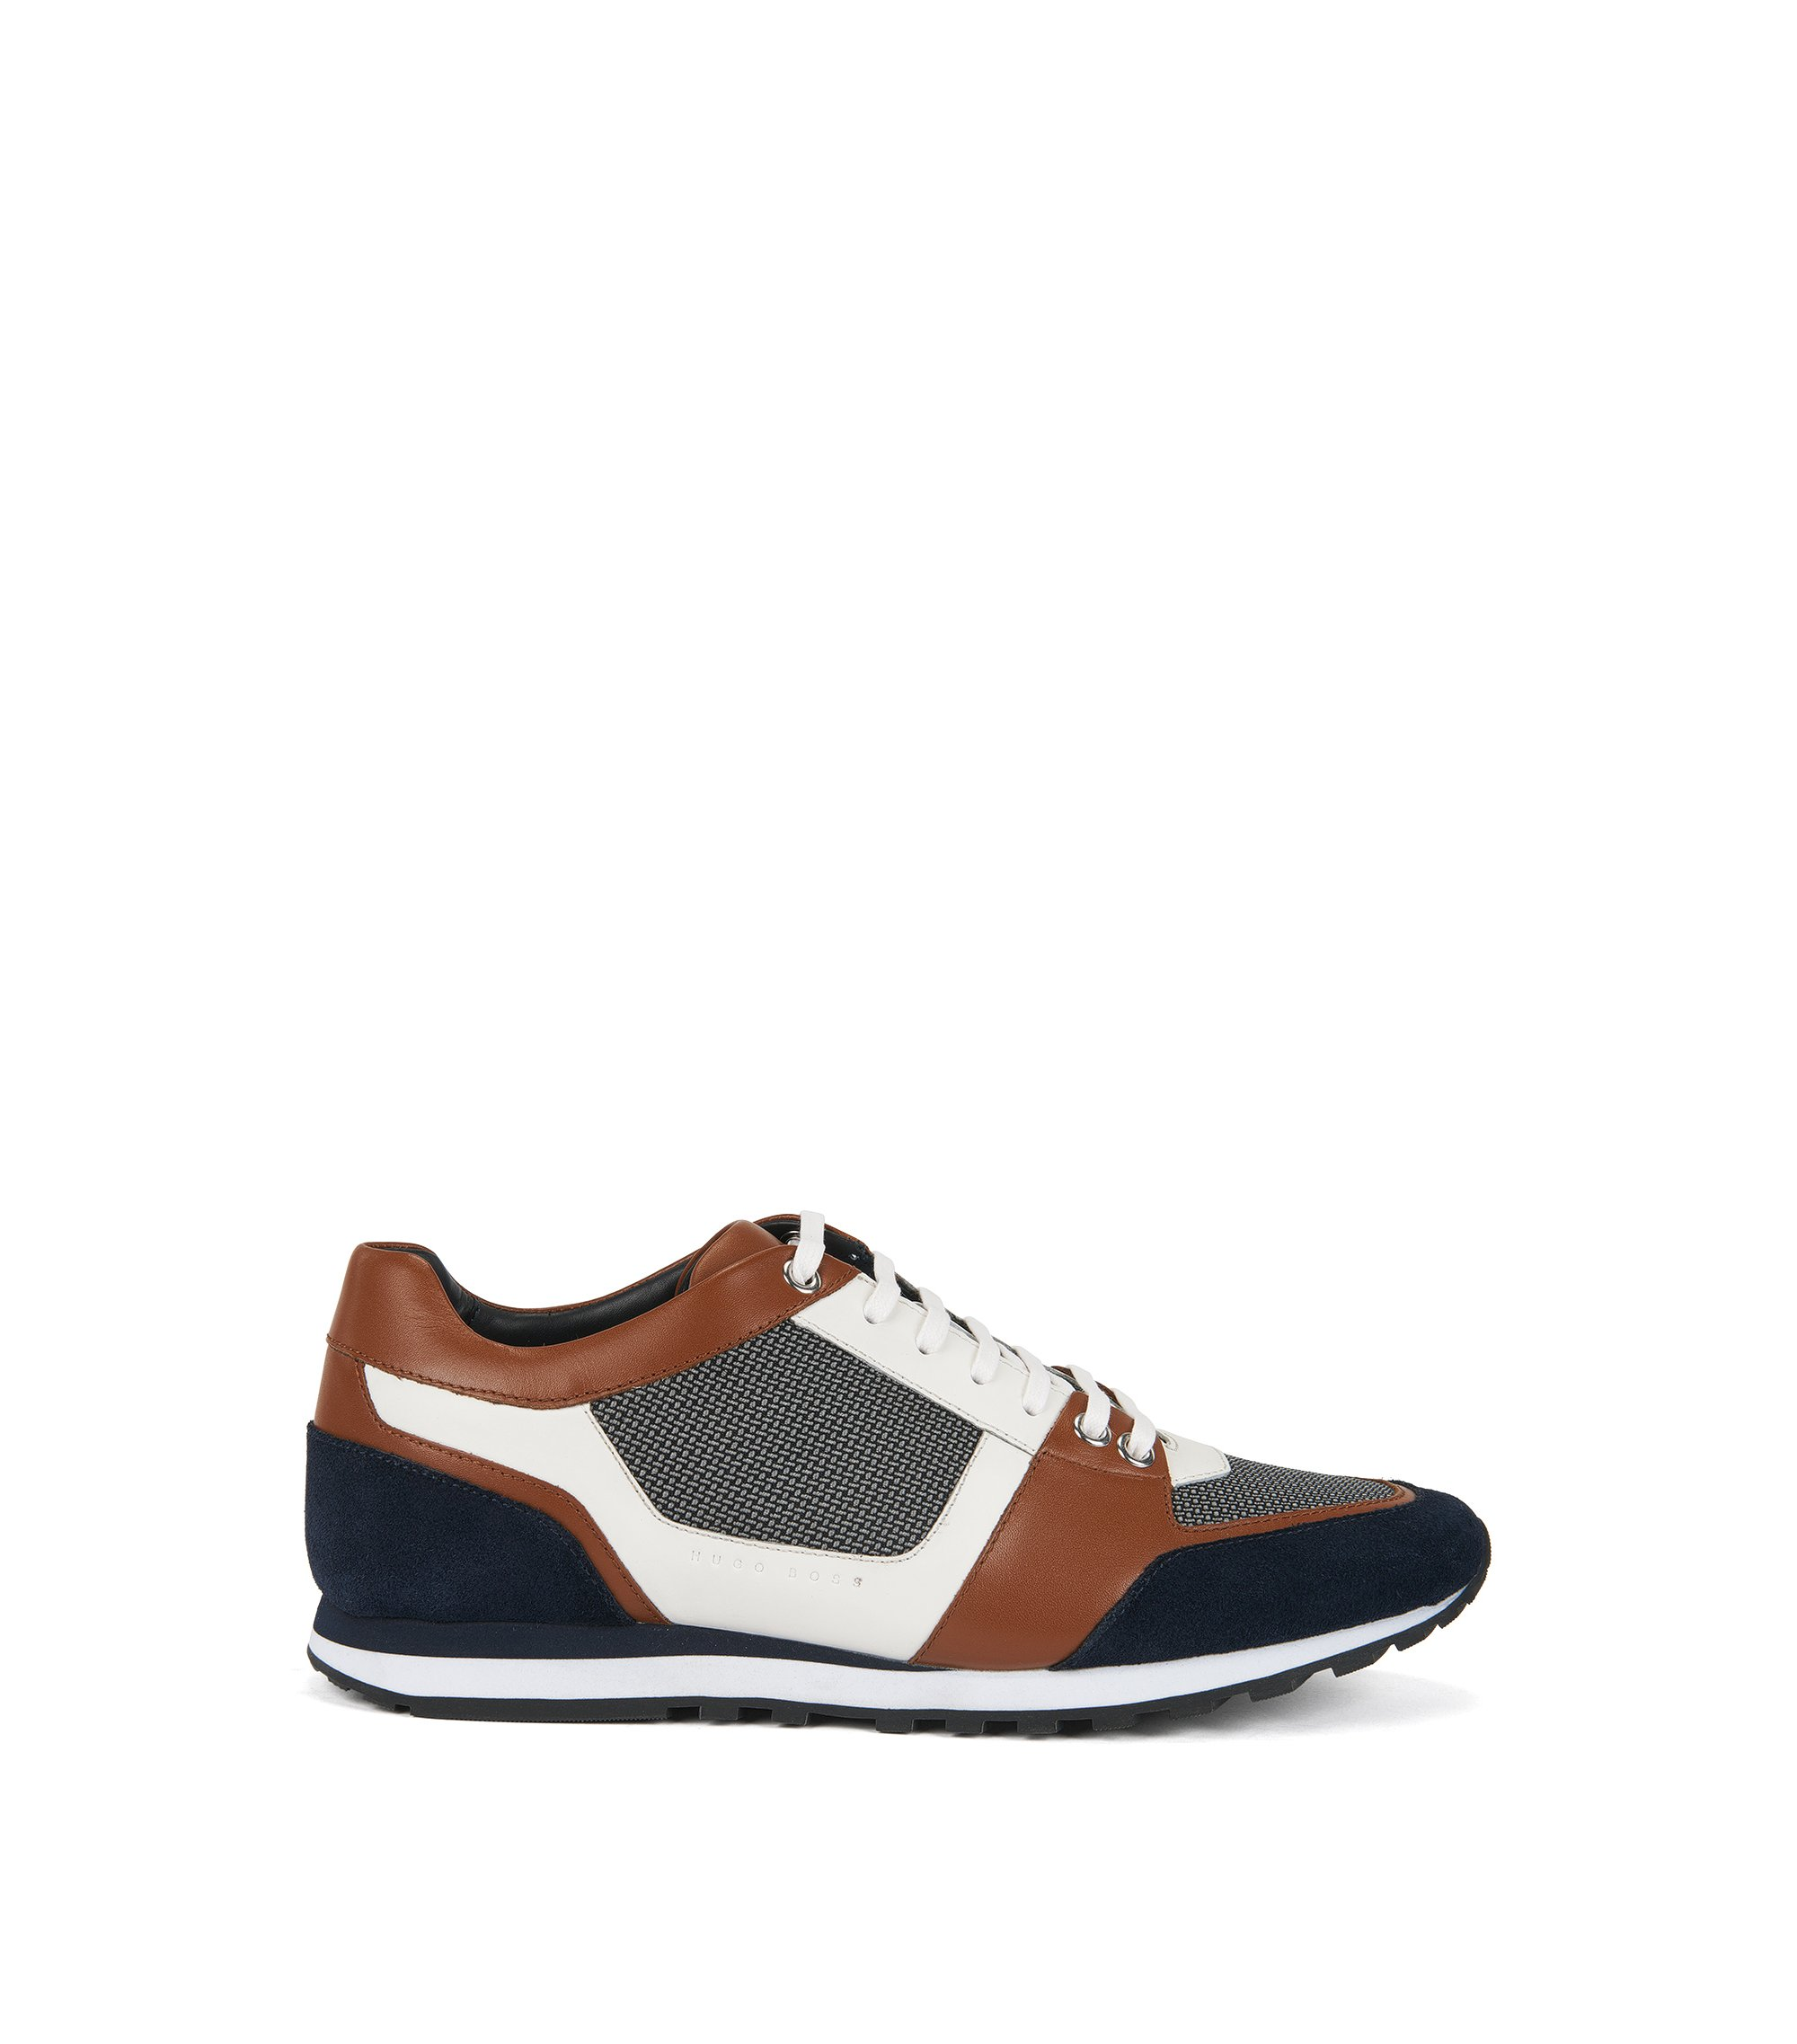 Sneakers aus Leder und Material-Mix im Colour Block Design, Braun